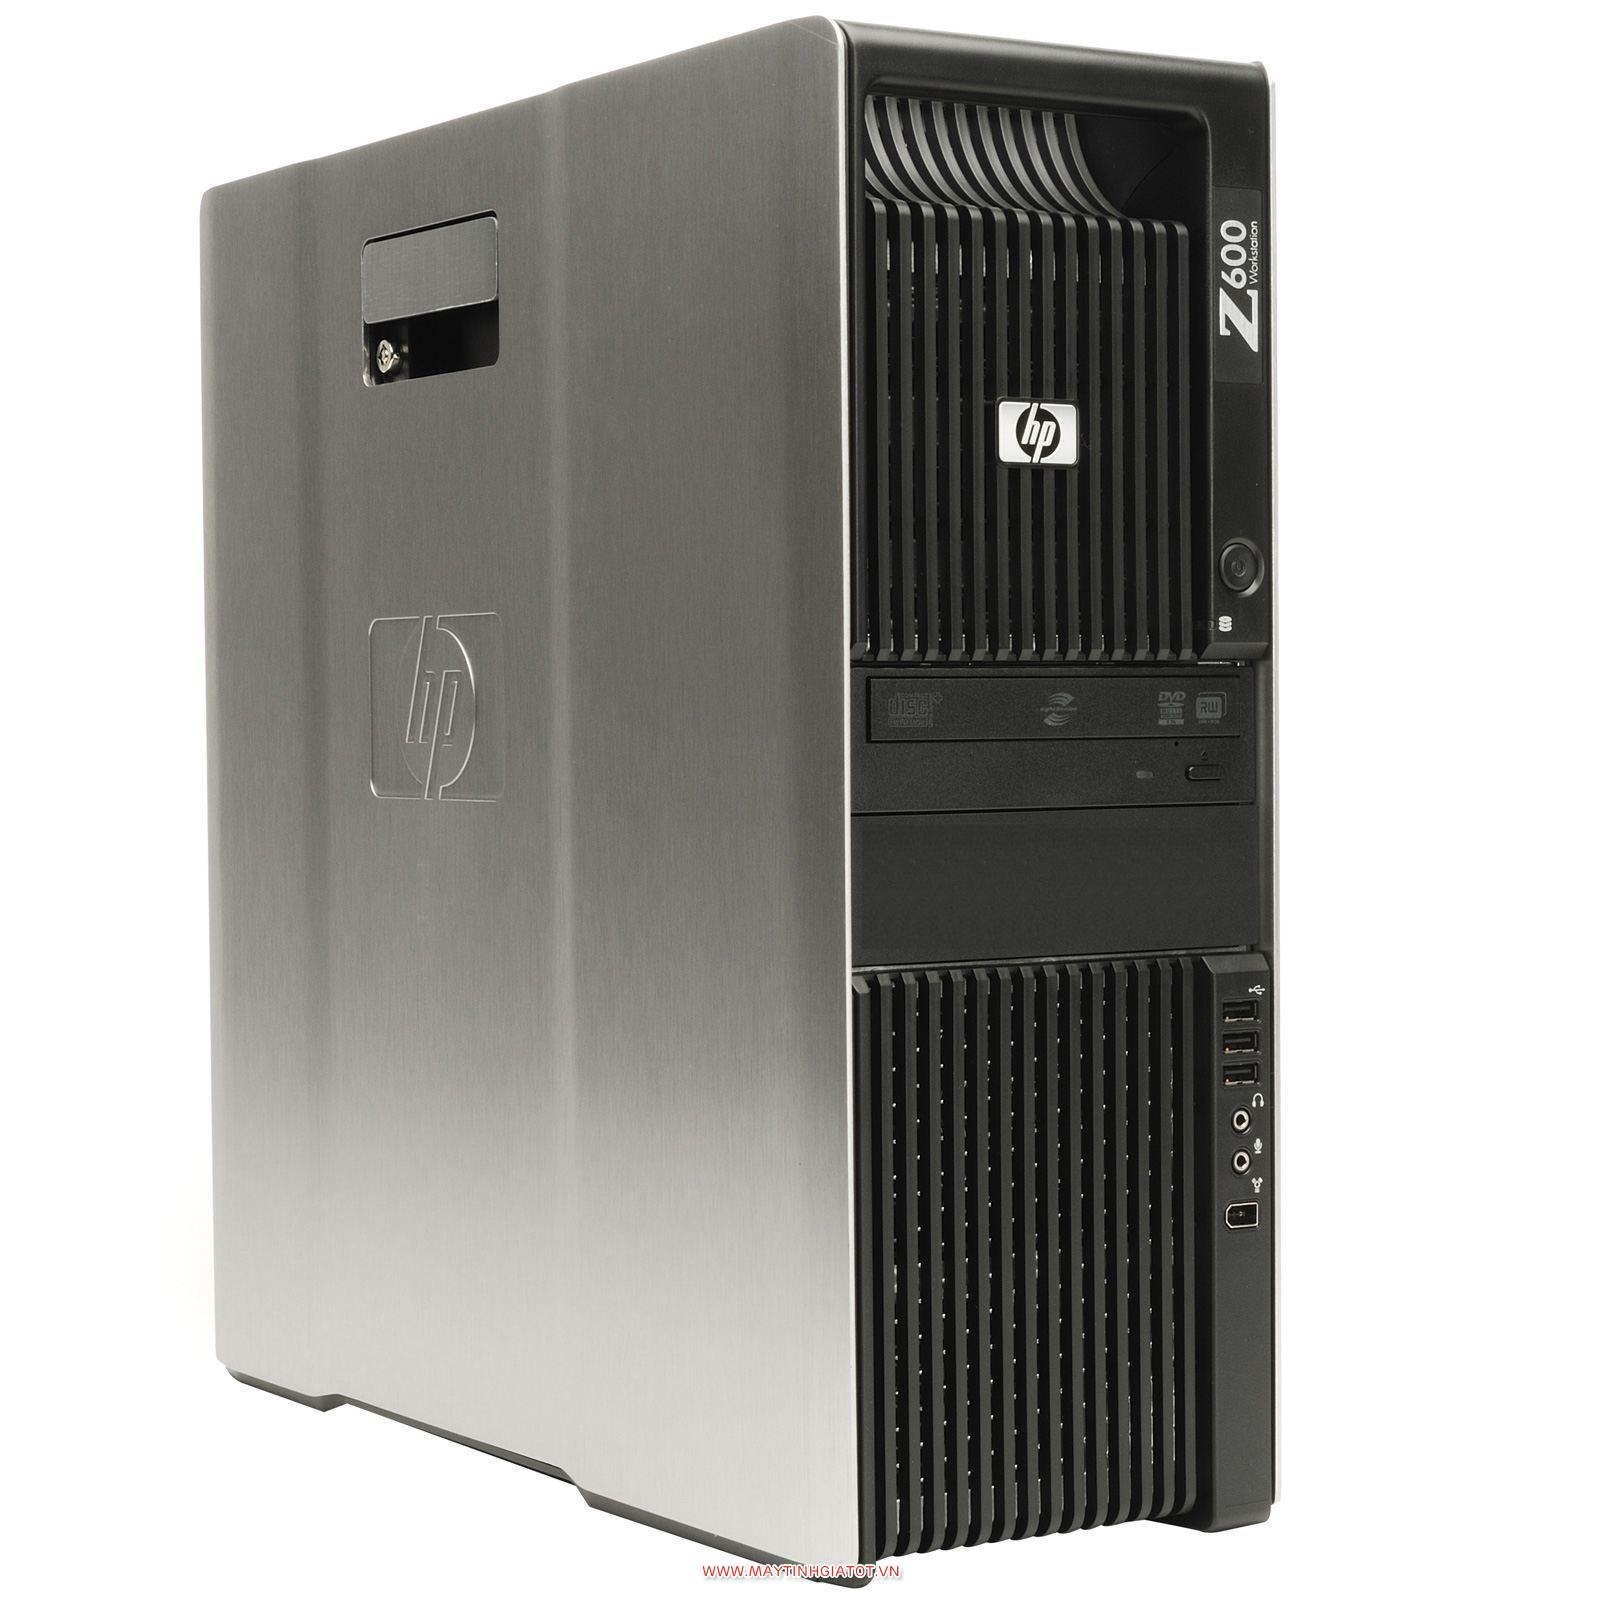 CẤU HÌNH WOKSTATION HP Z600 DUAL XEON X5650 (24 THREADS), RAM 32GB / GTX1050TI 4GB